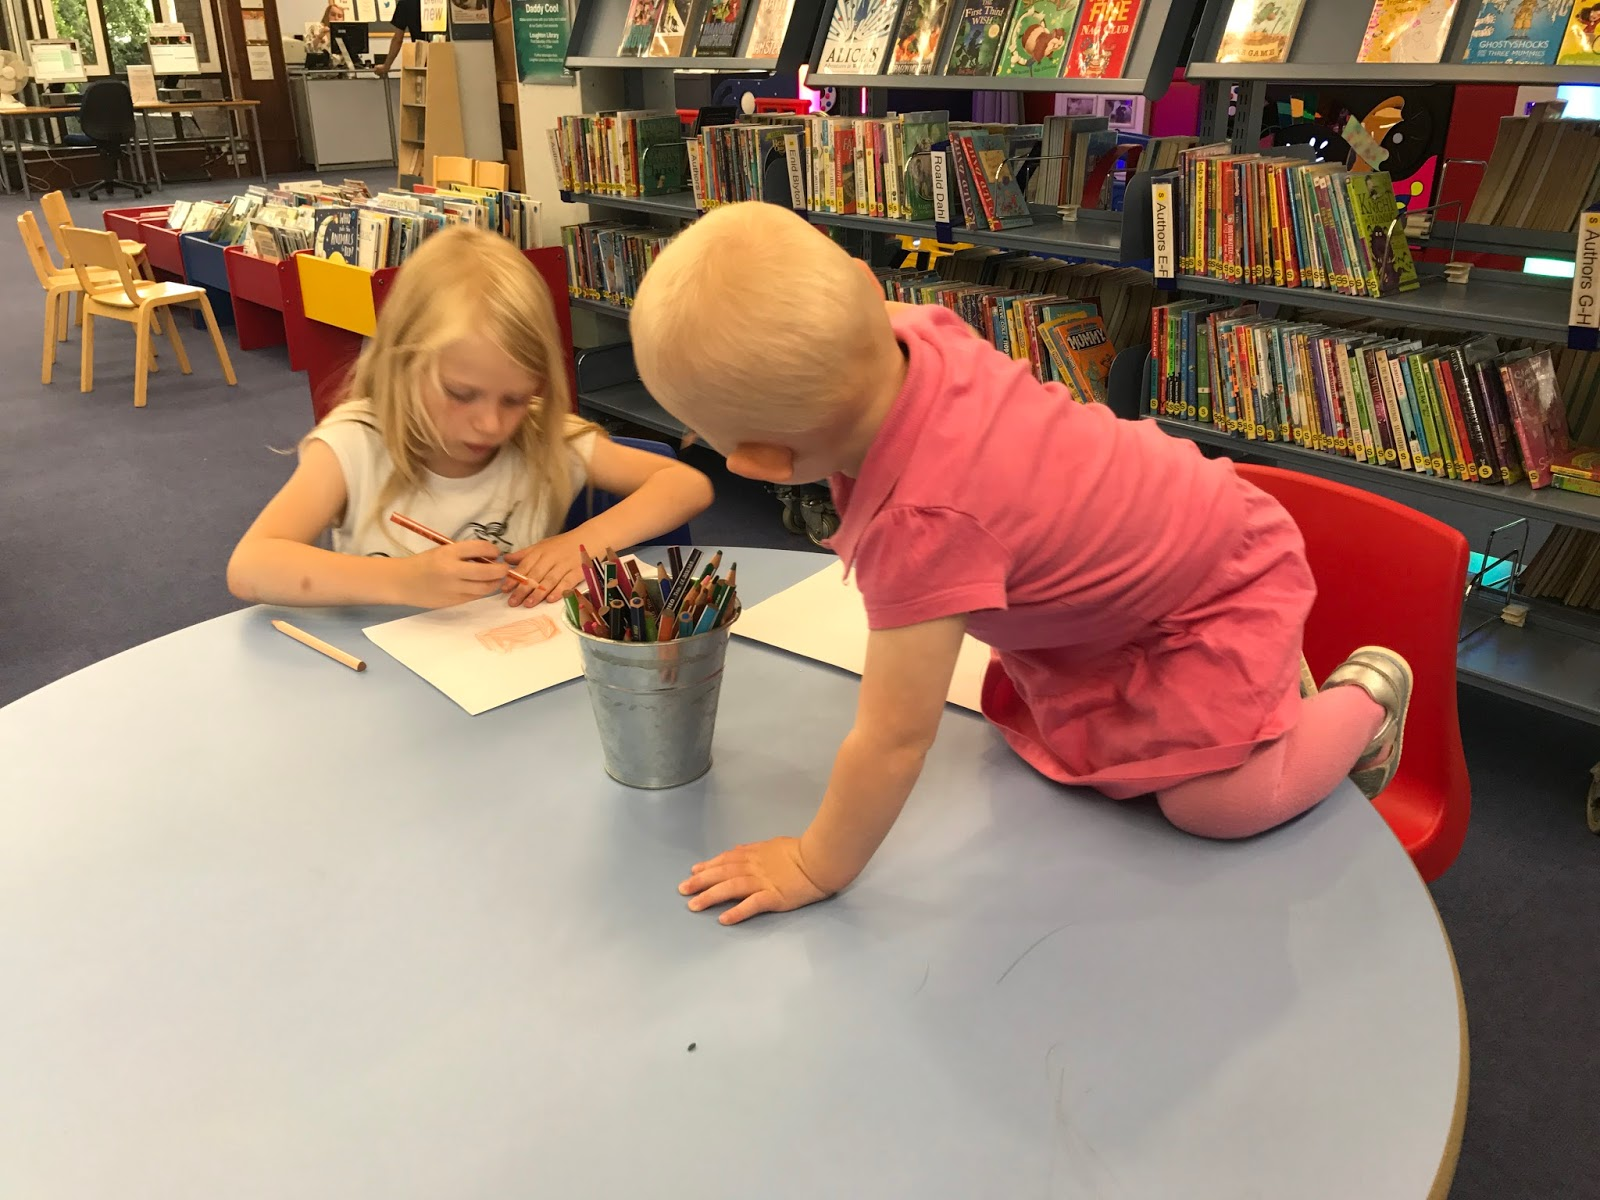 A girl drawing in a library while the toddler climbs on the table